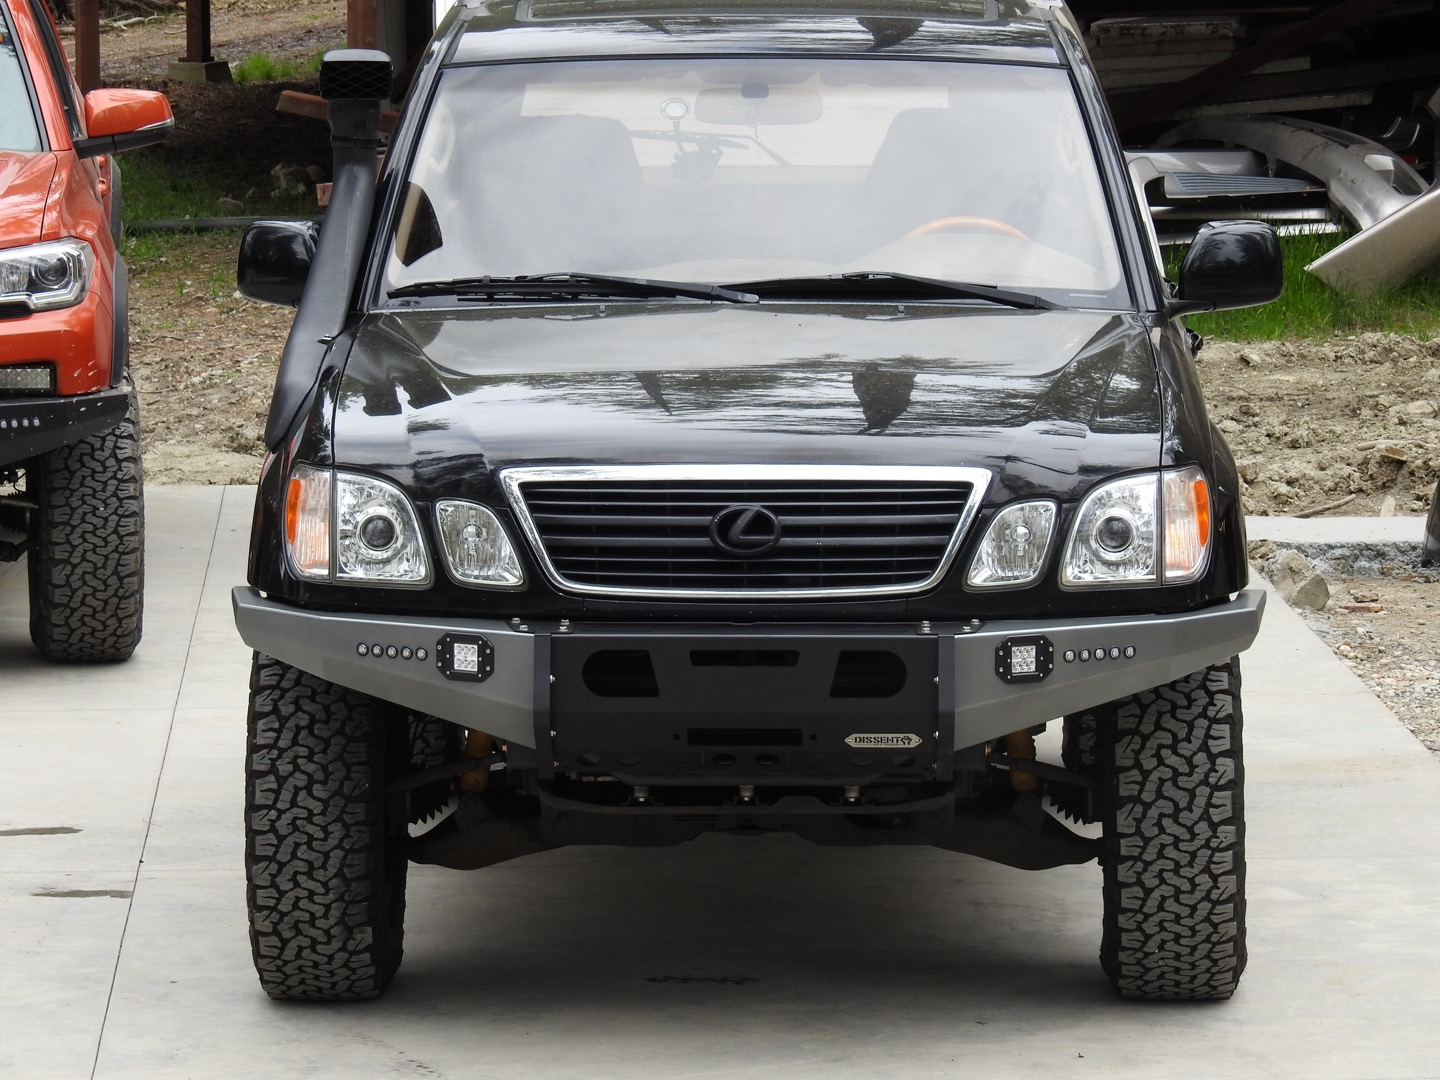 Dissent offroad modular front bumper | Page 84 | IH8MUD Forum